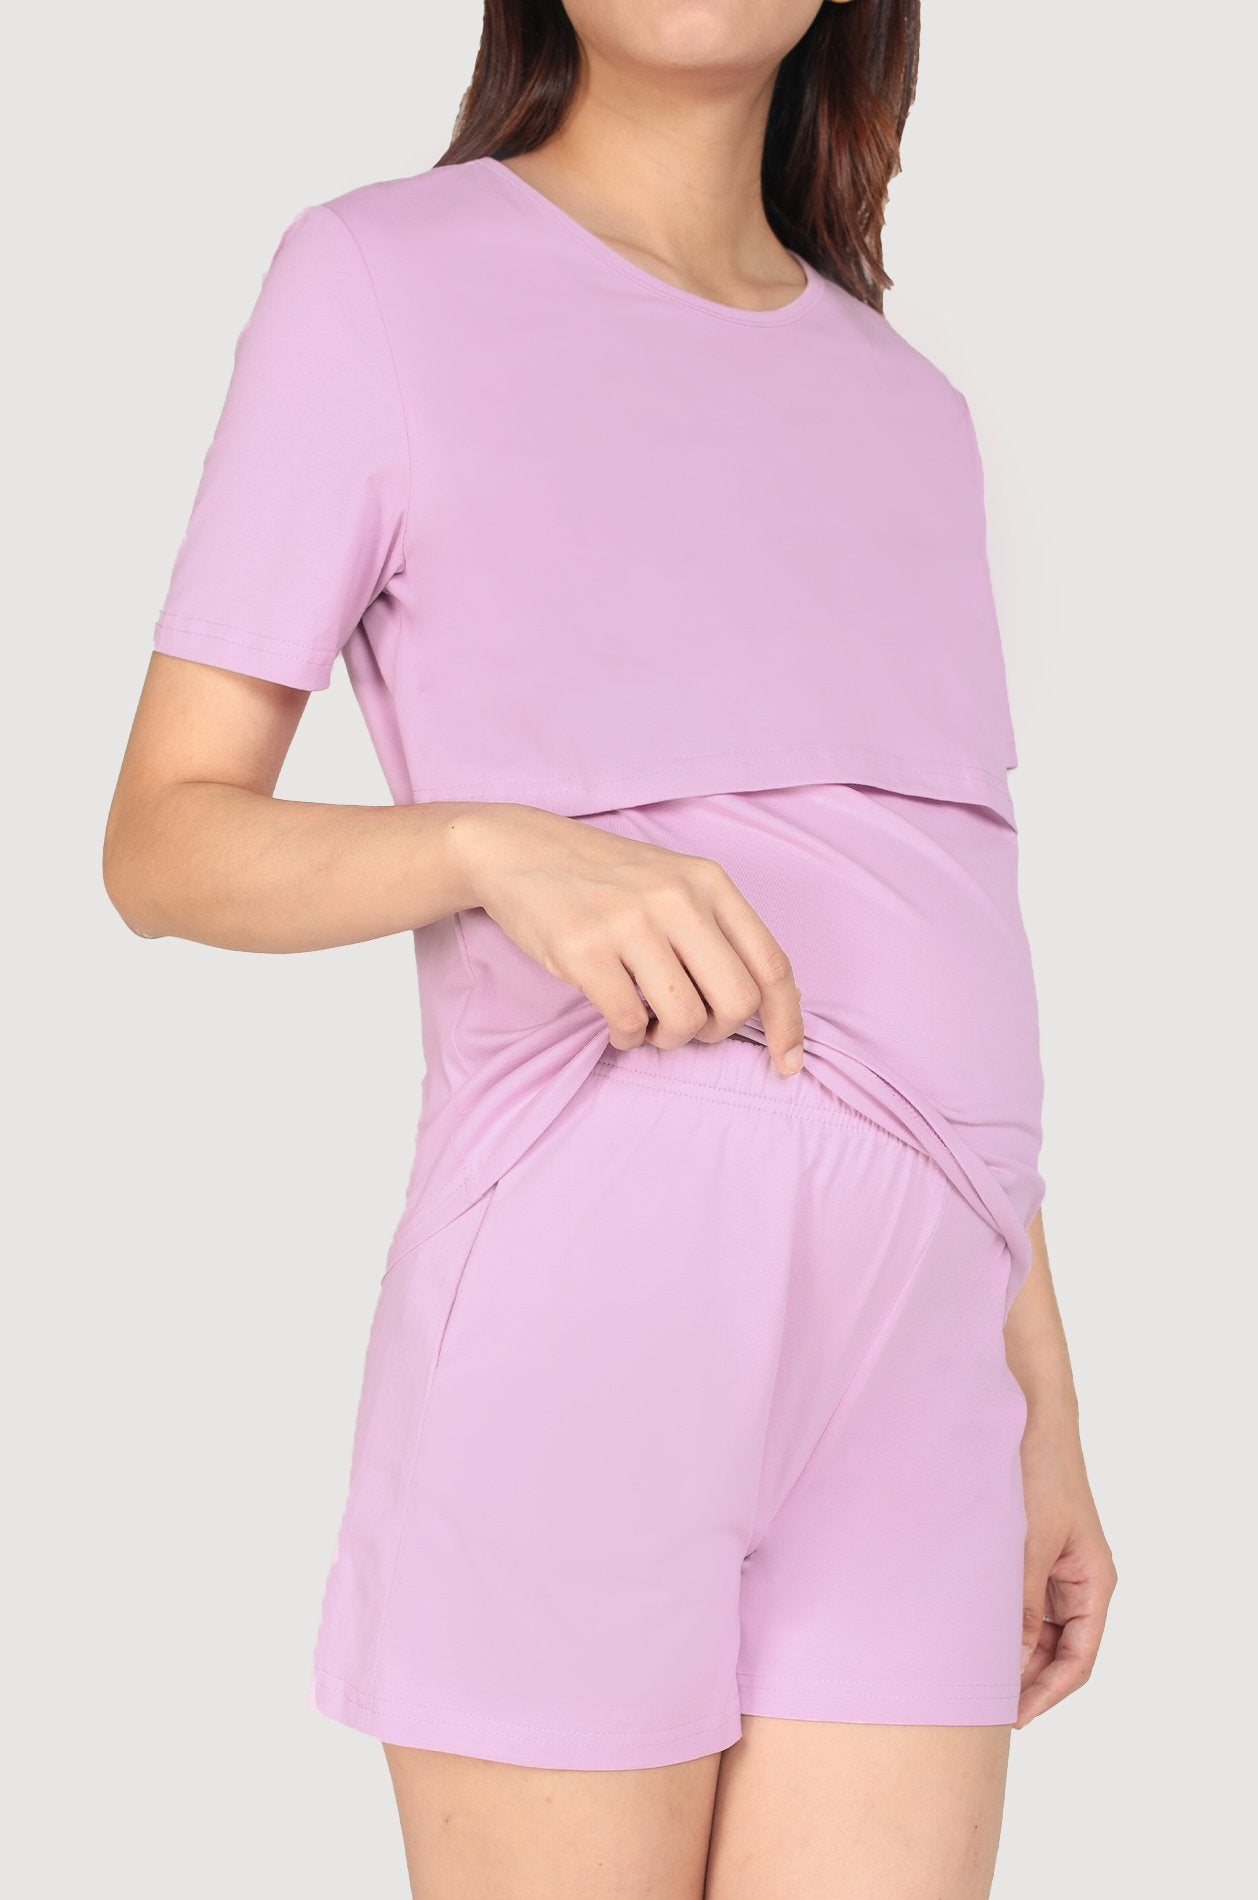 Palma Lounge Shorts In Lavender Nursing Wear Jump Eat Cry